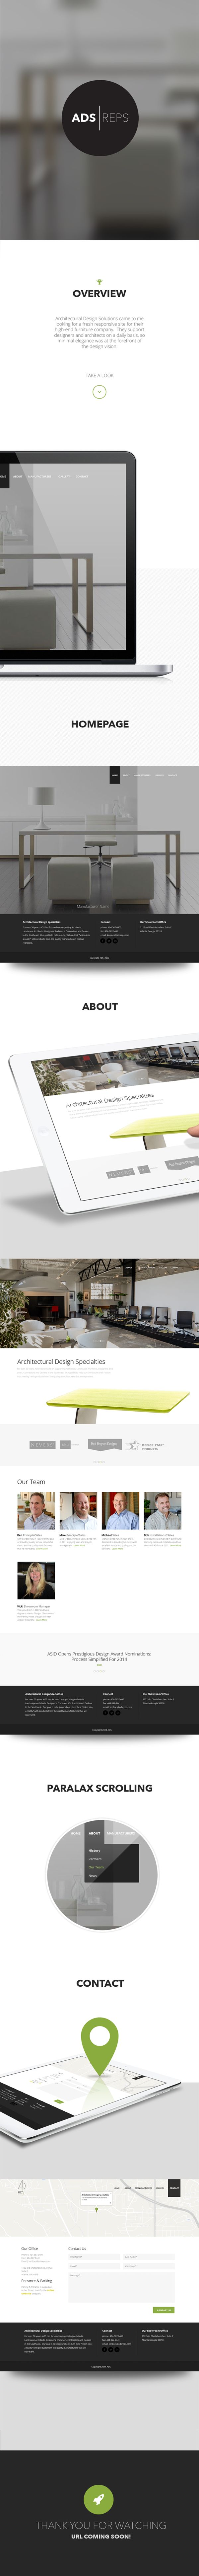 Architectural Design Specialties Website by Christopher Taylor, via Behance